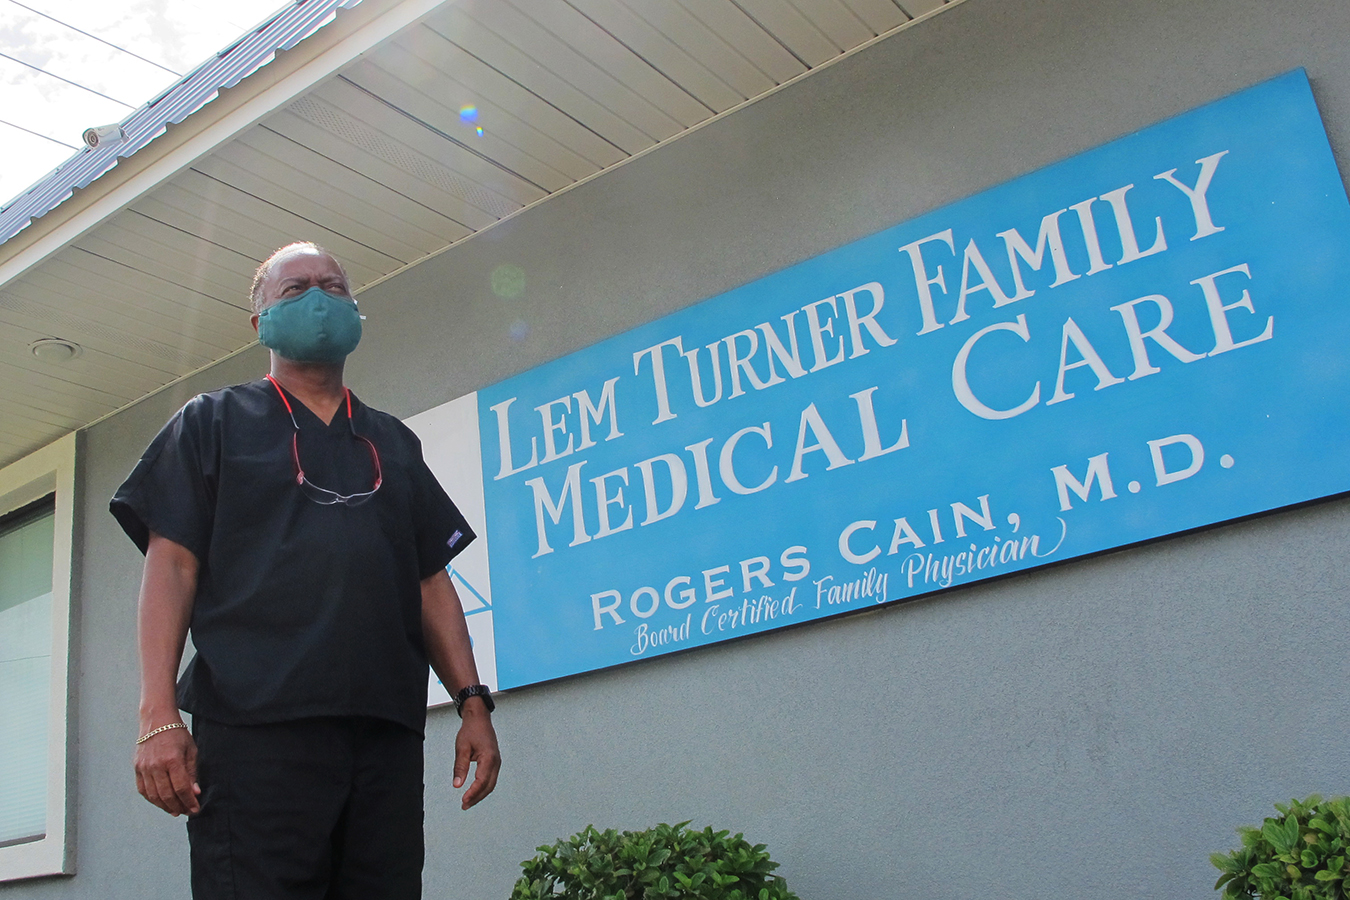 Florida's Cautionary Tale: How Gutting and Muzzling Public Health Fueled COVID Fire thumbnail